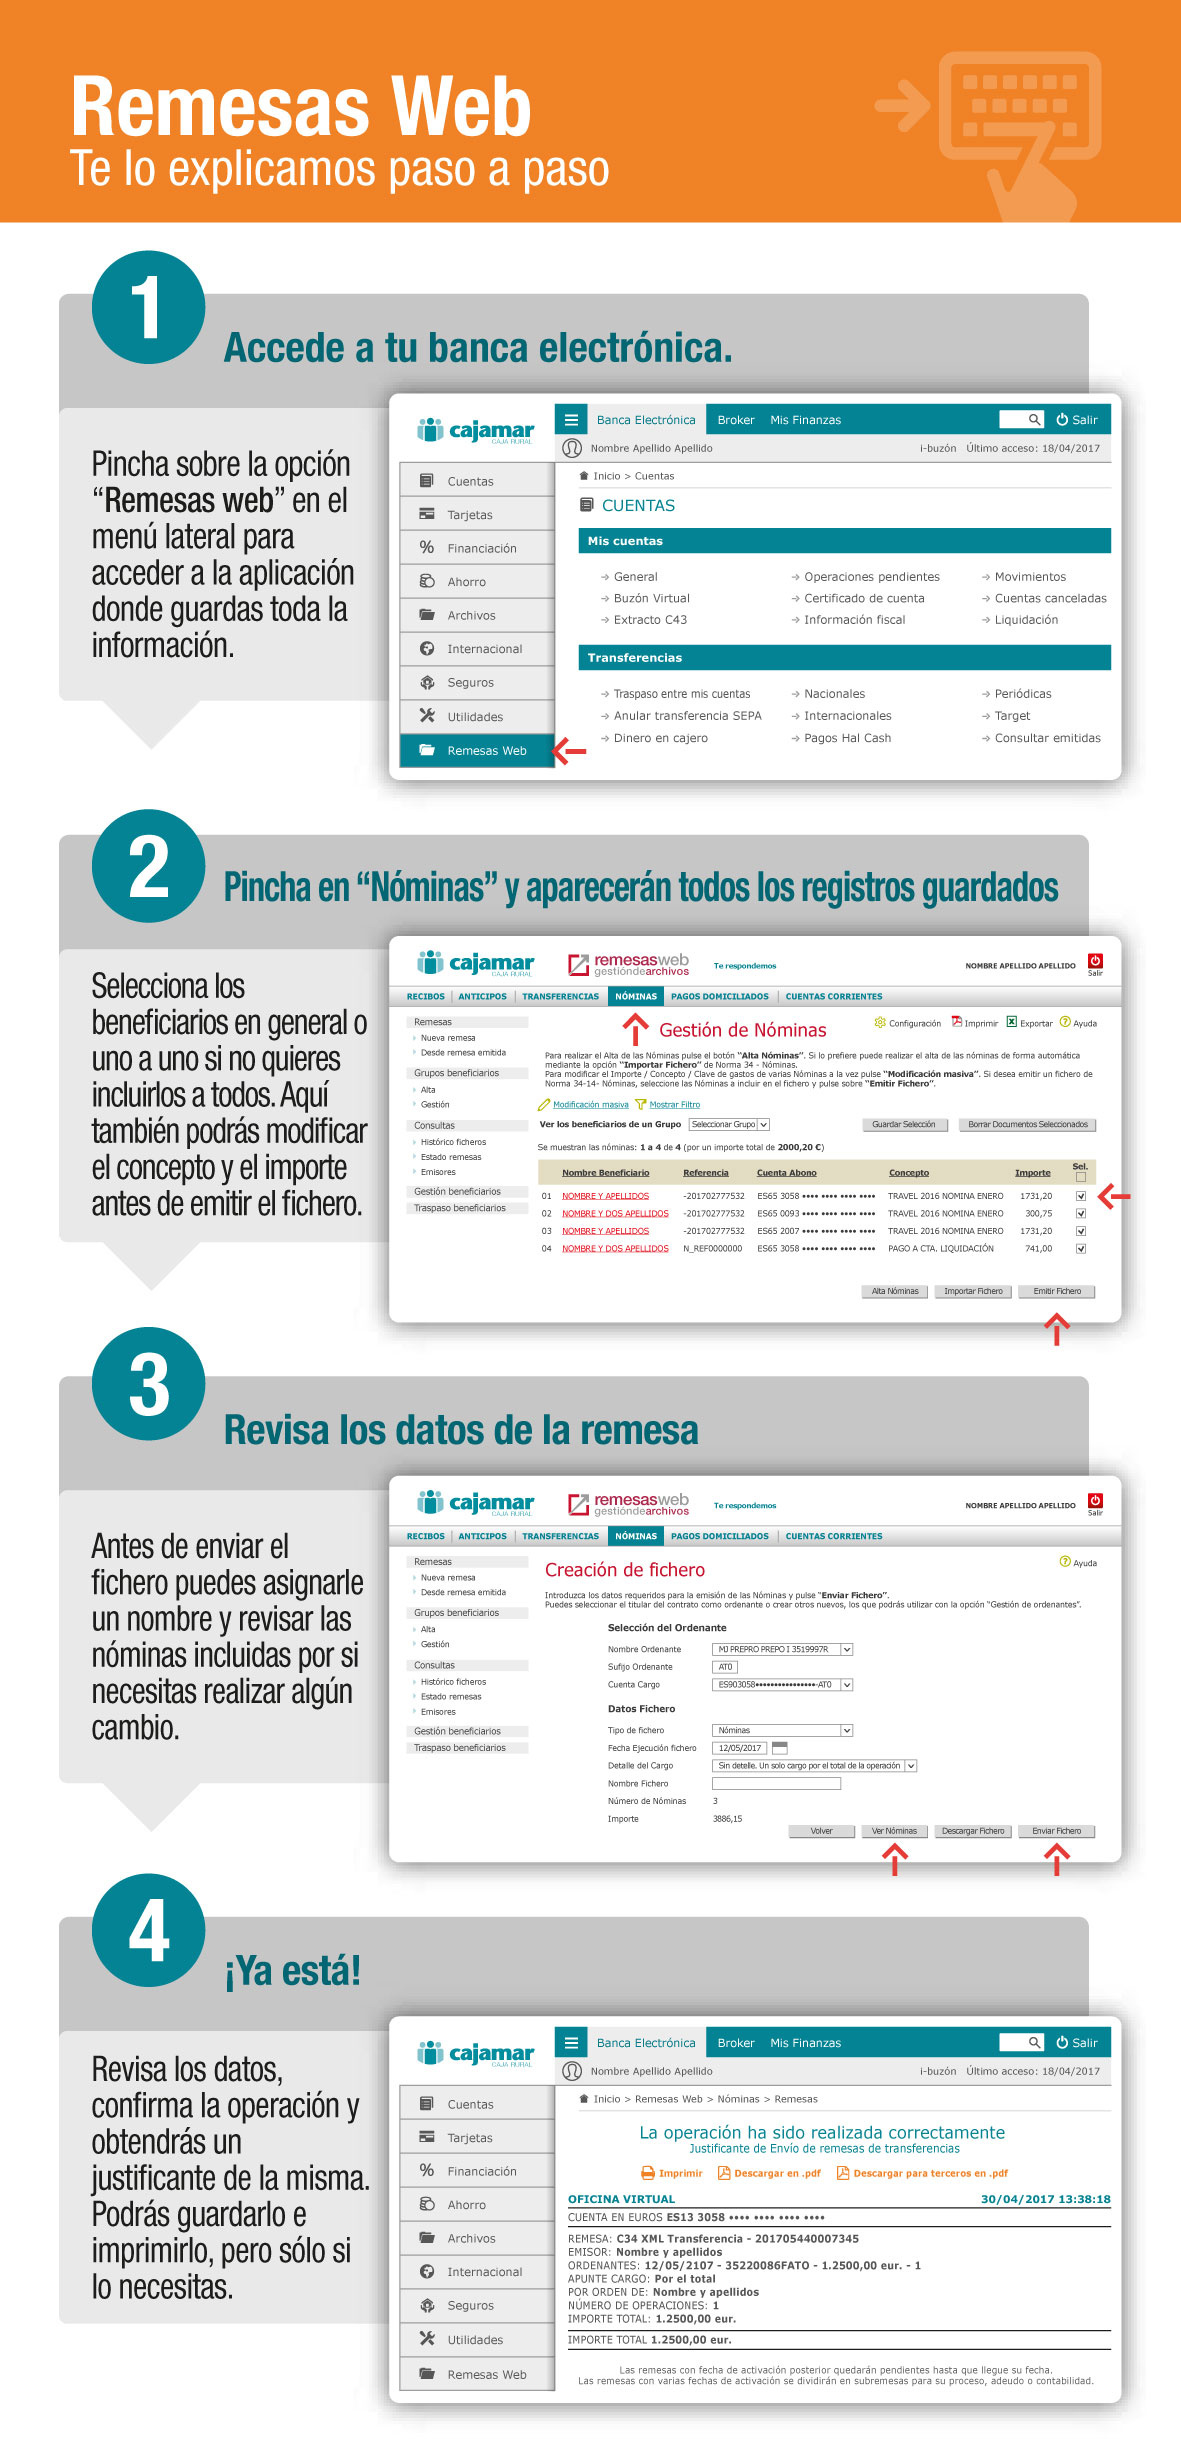 be remesas web